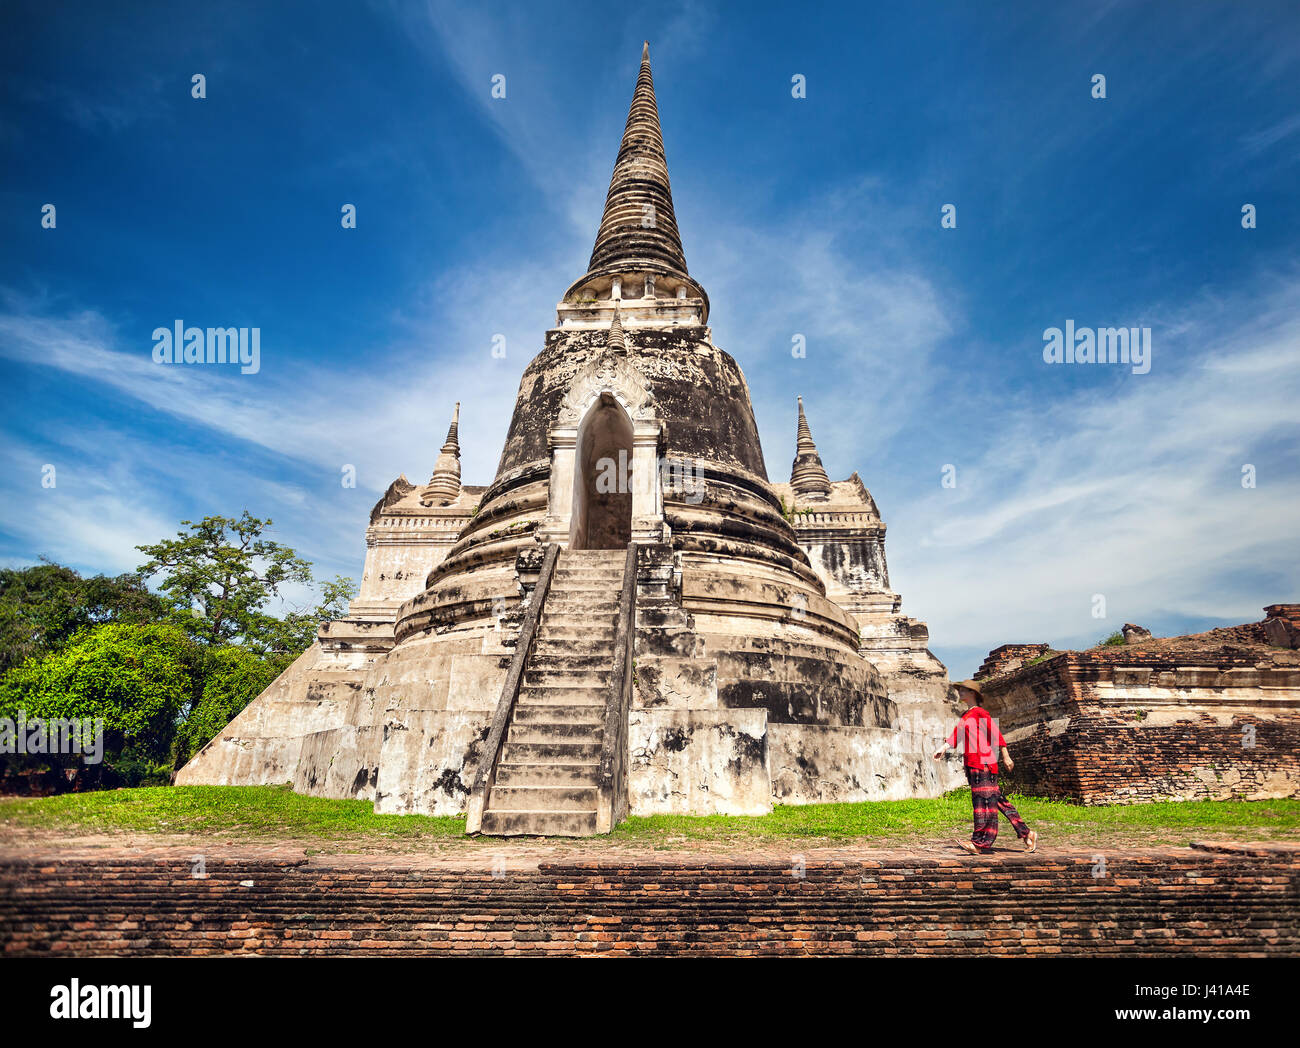 Tourist Woman in red costume walking near ancient ruined stupa in Ayutthaya Historical Park, Thailand - Stock Image